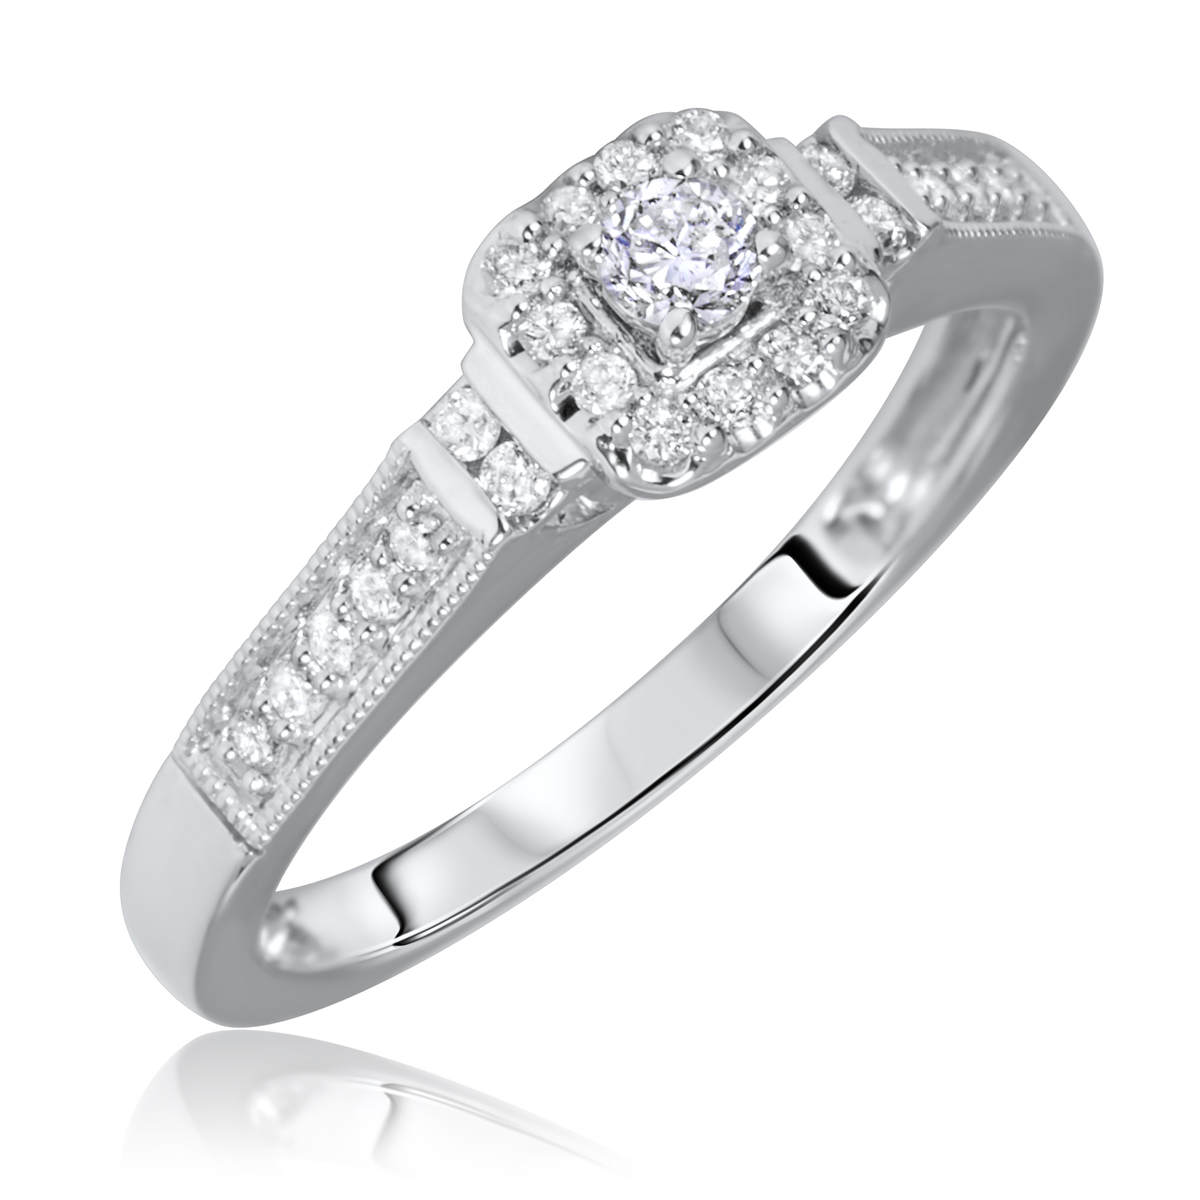 1 5 Carat T W Solitaire Rounds Cut Diamond Engagement Ring 10K White Gold